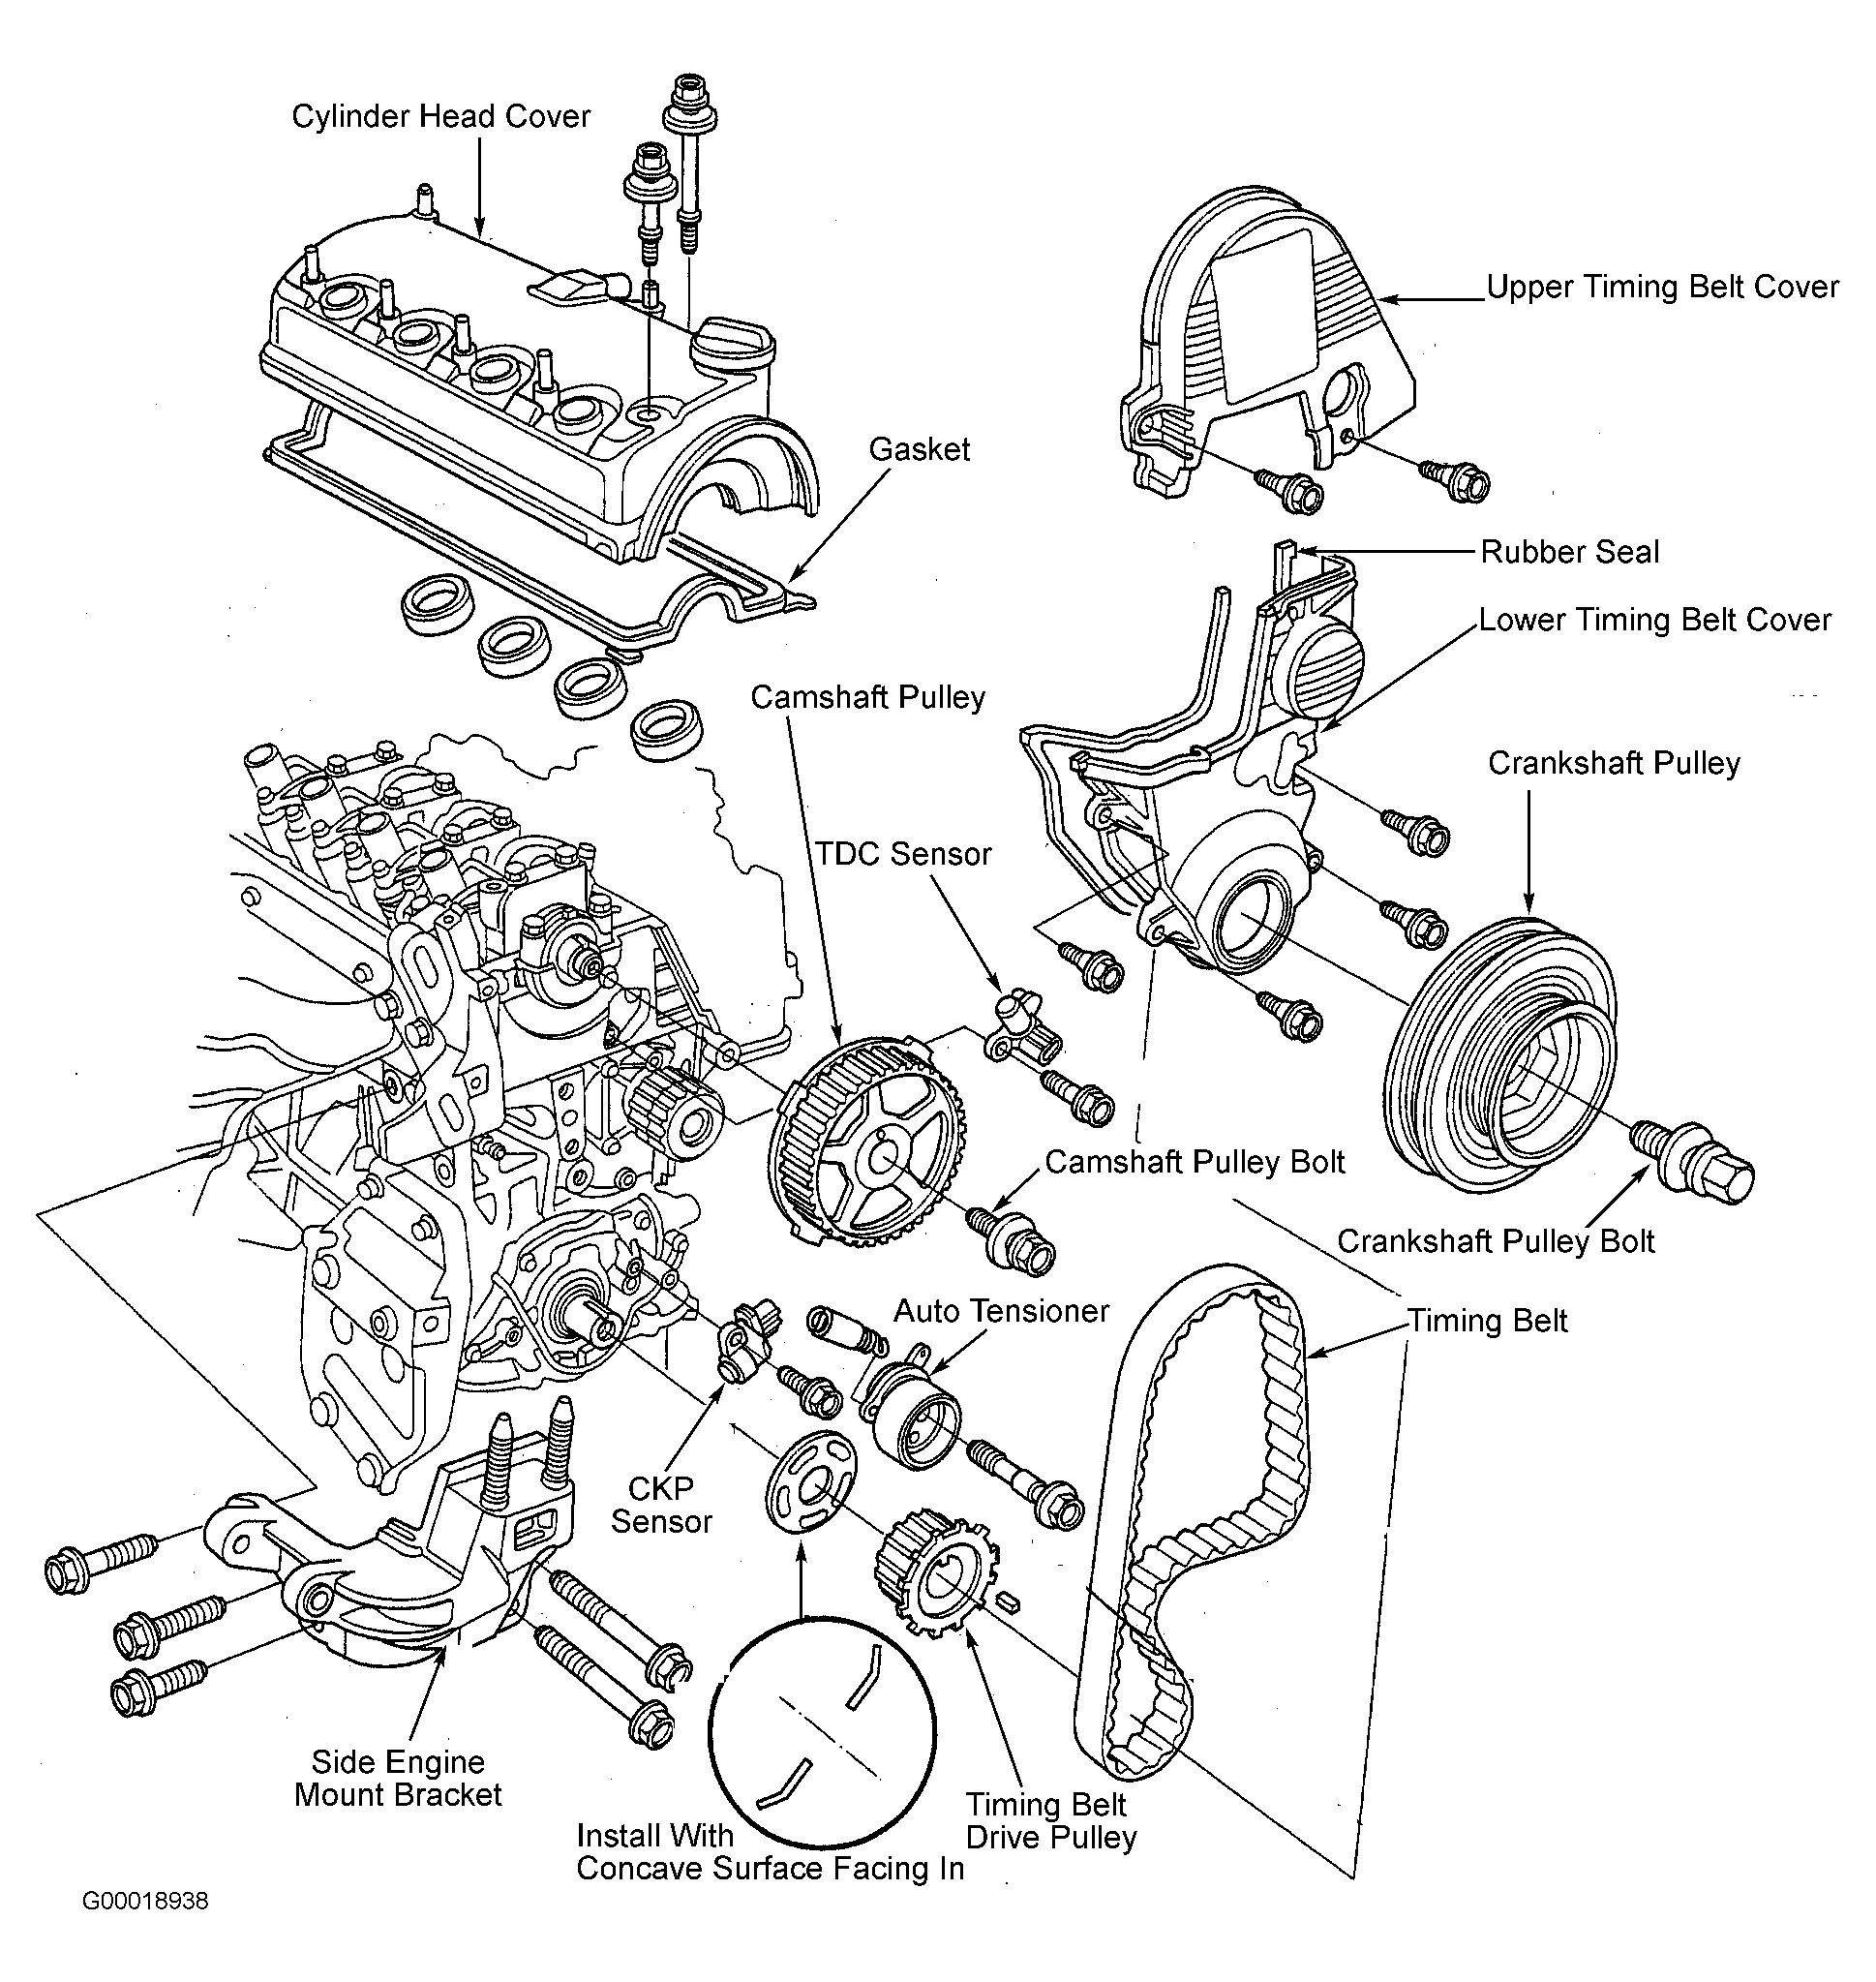 Diagram Of Honda Civic Engine Honda Civic Engine Diagram Honda Civic Parts  Diagram Wonderful Of Diagram